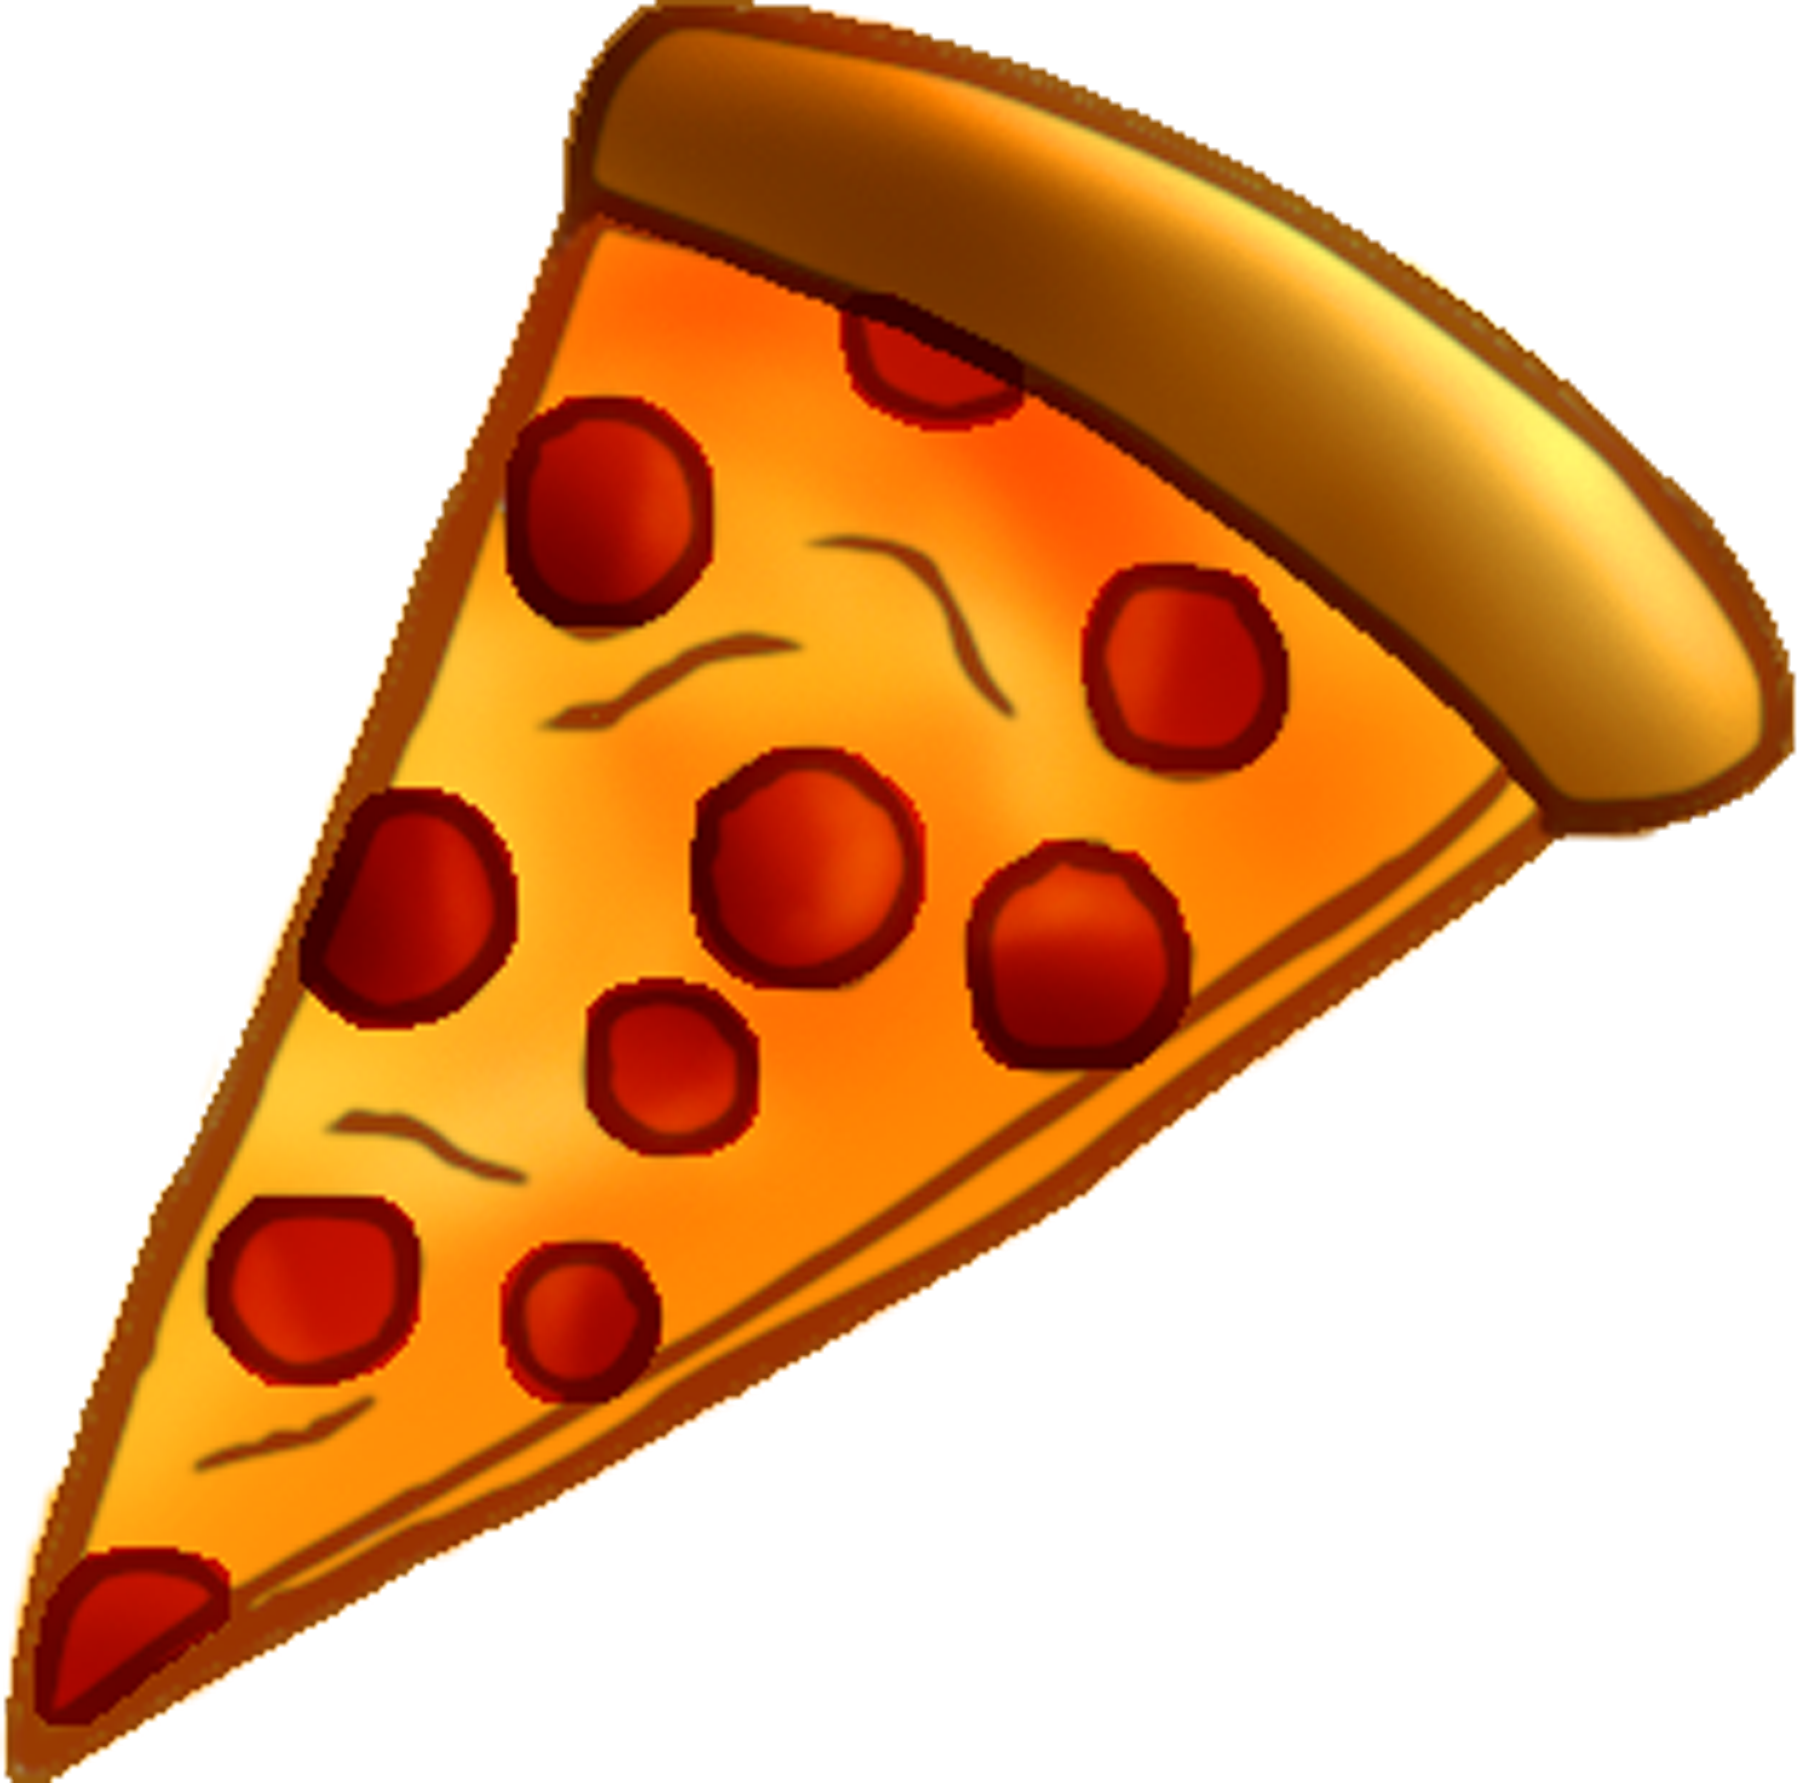 Pizza slice clip art free .